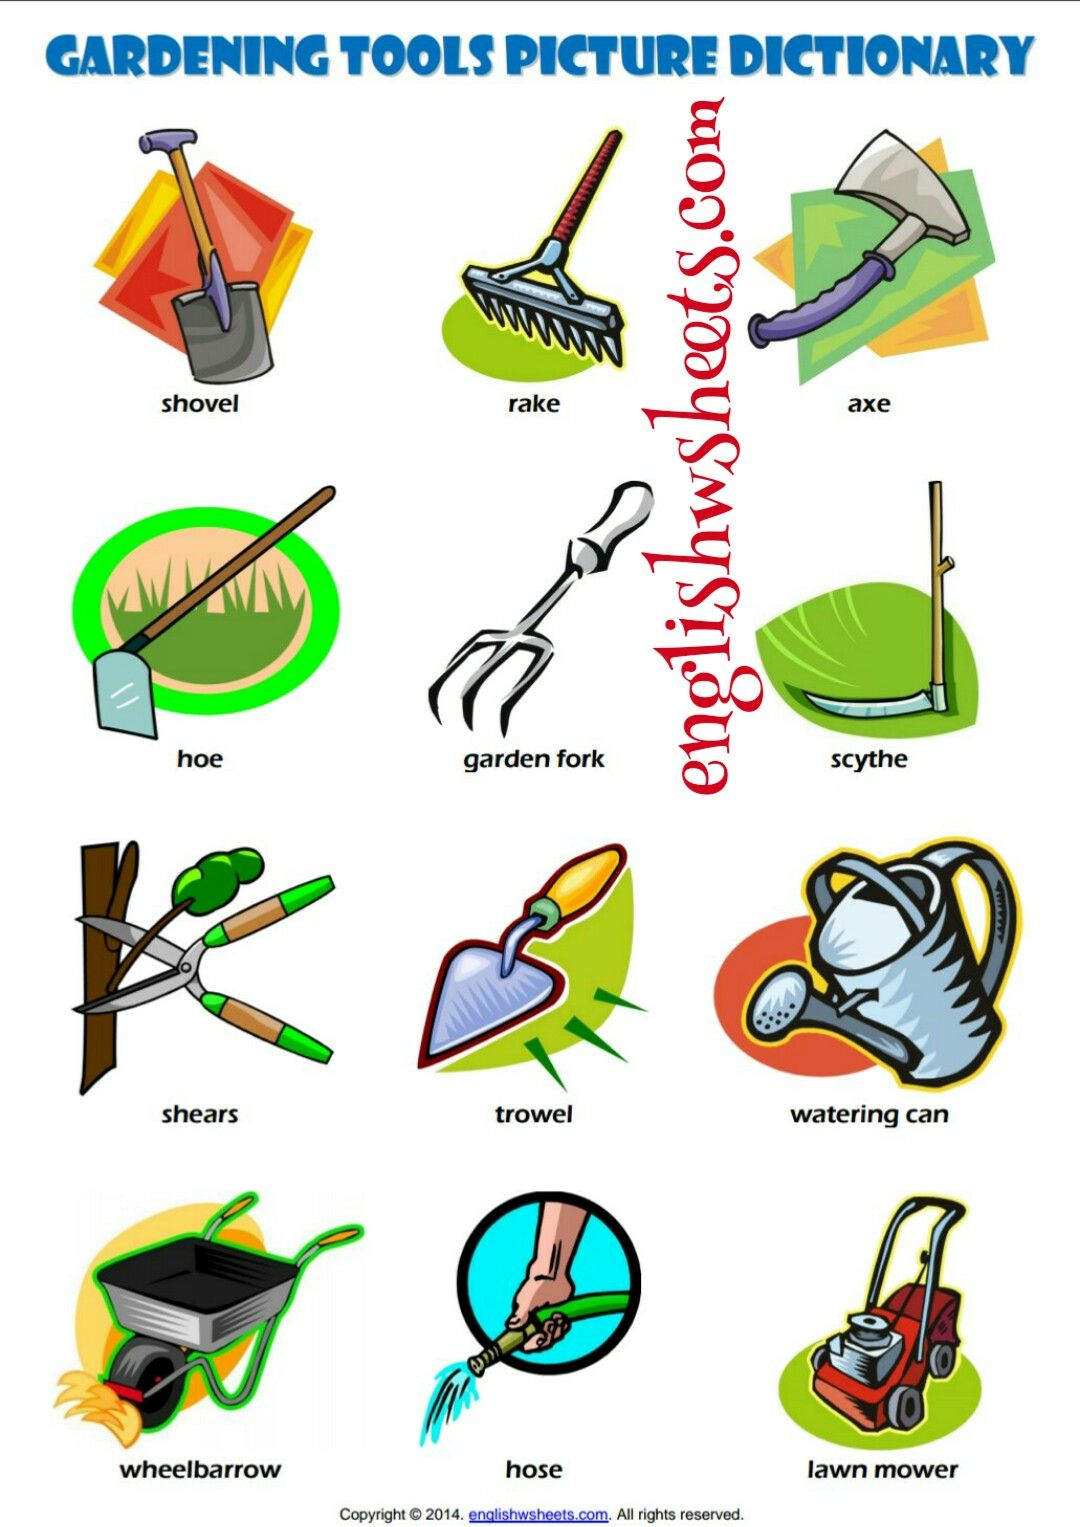 Esl Printable Gardening Tools Vocabulary Worksheets For Kids #esl - Free Printable Picture Dictionary For Kids